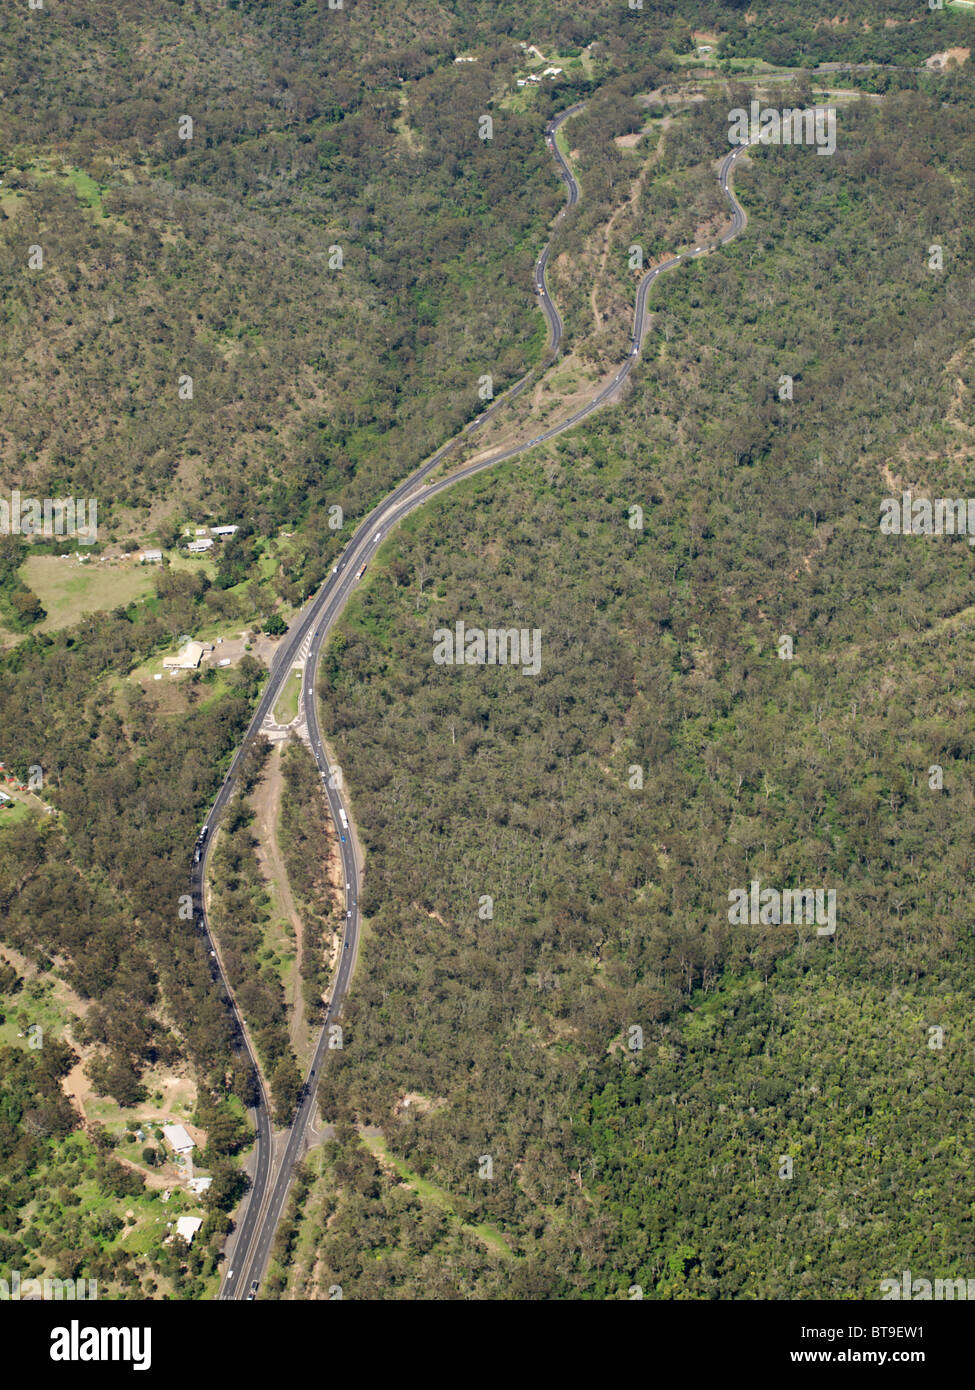 Warrego Highway - Stock Image